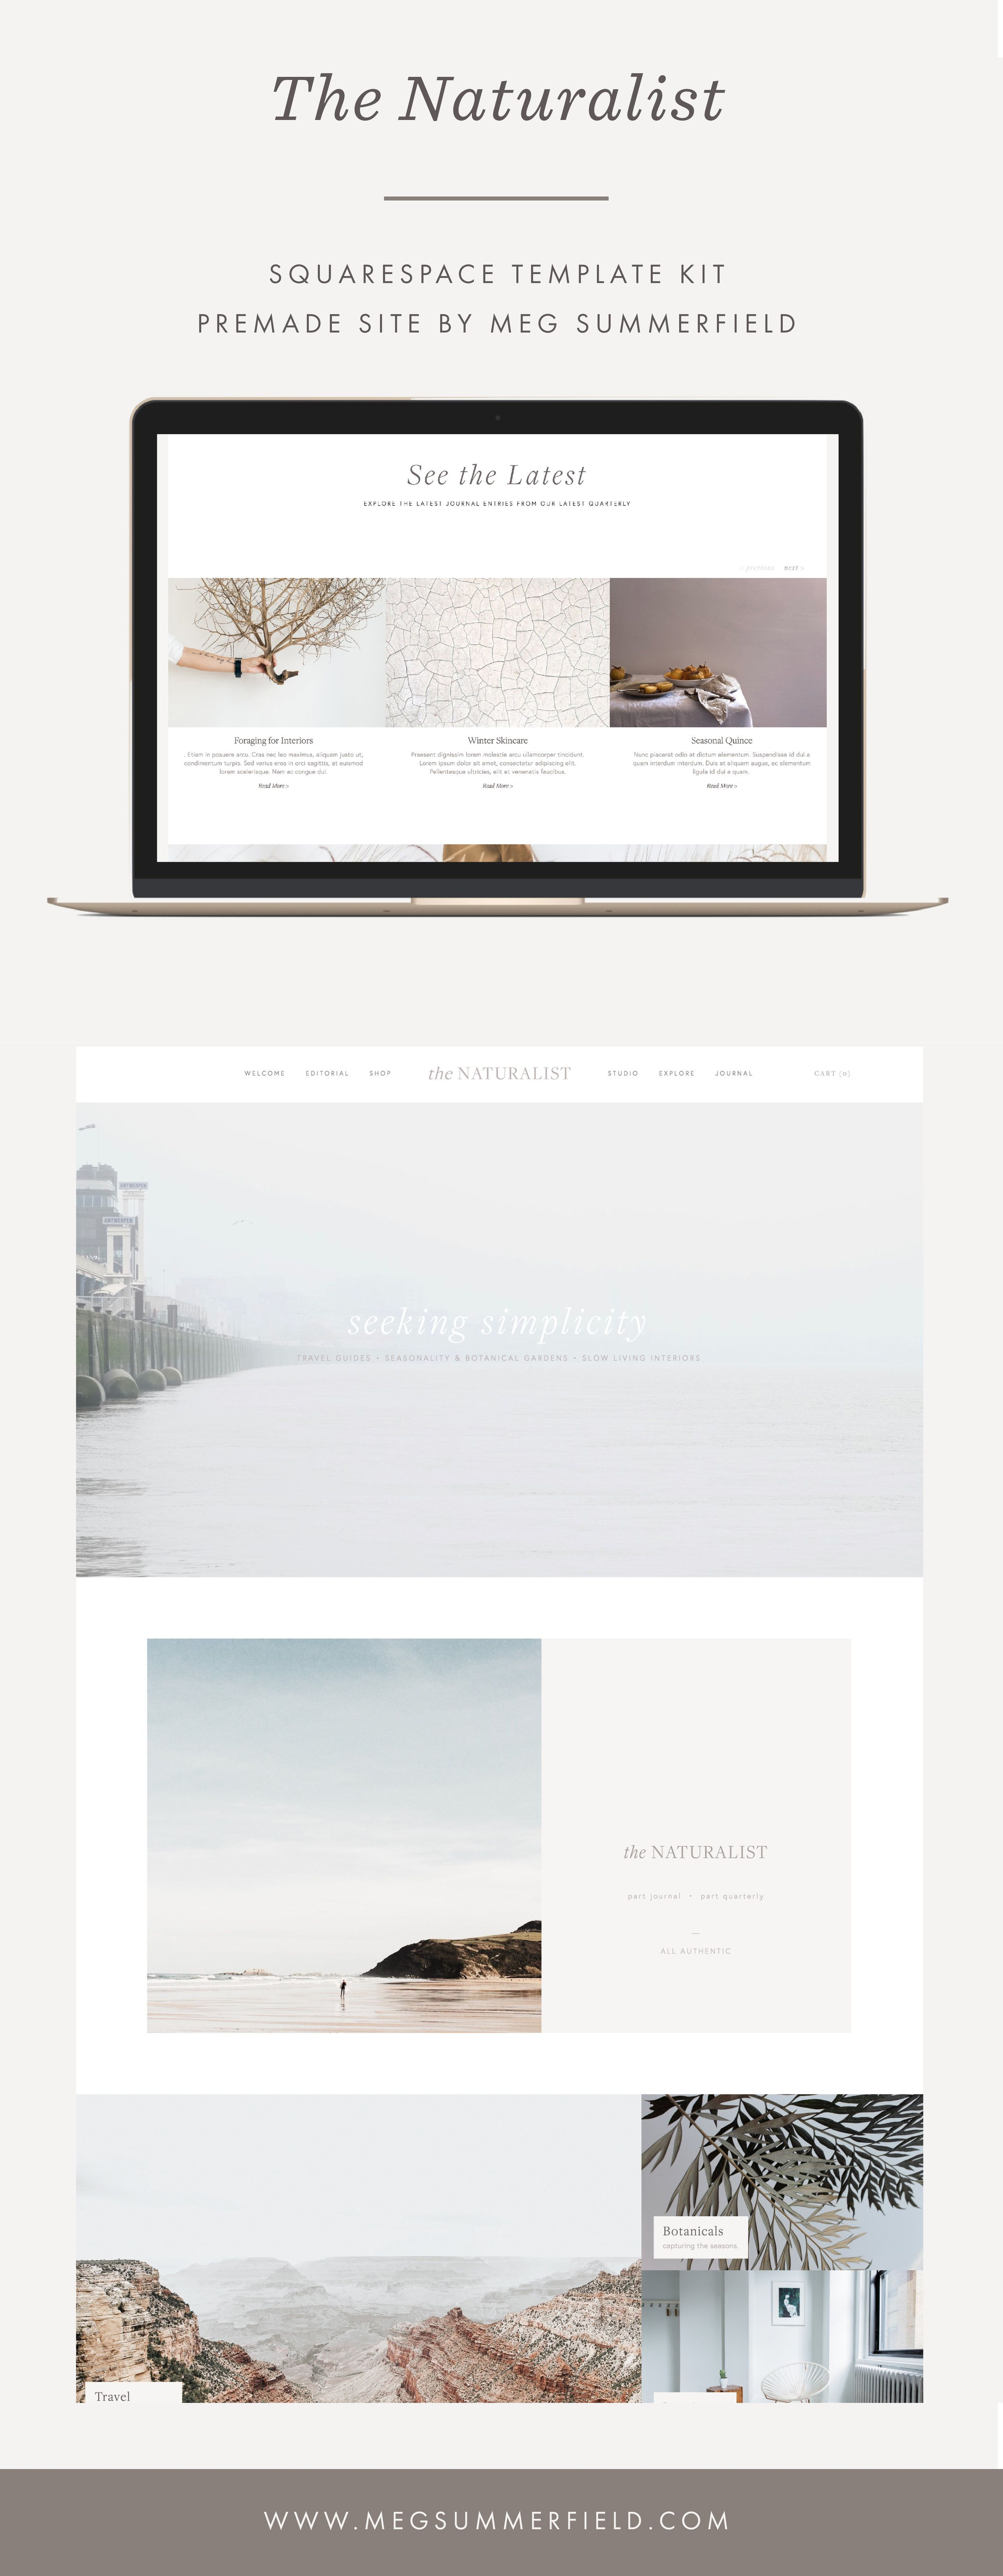 Premade Launch The Naturalist — Meg Summerfield Studio, LLC